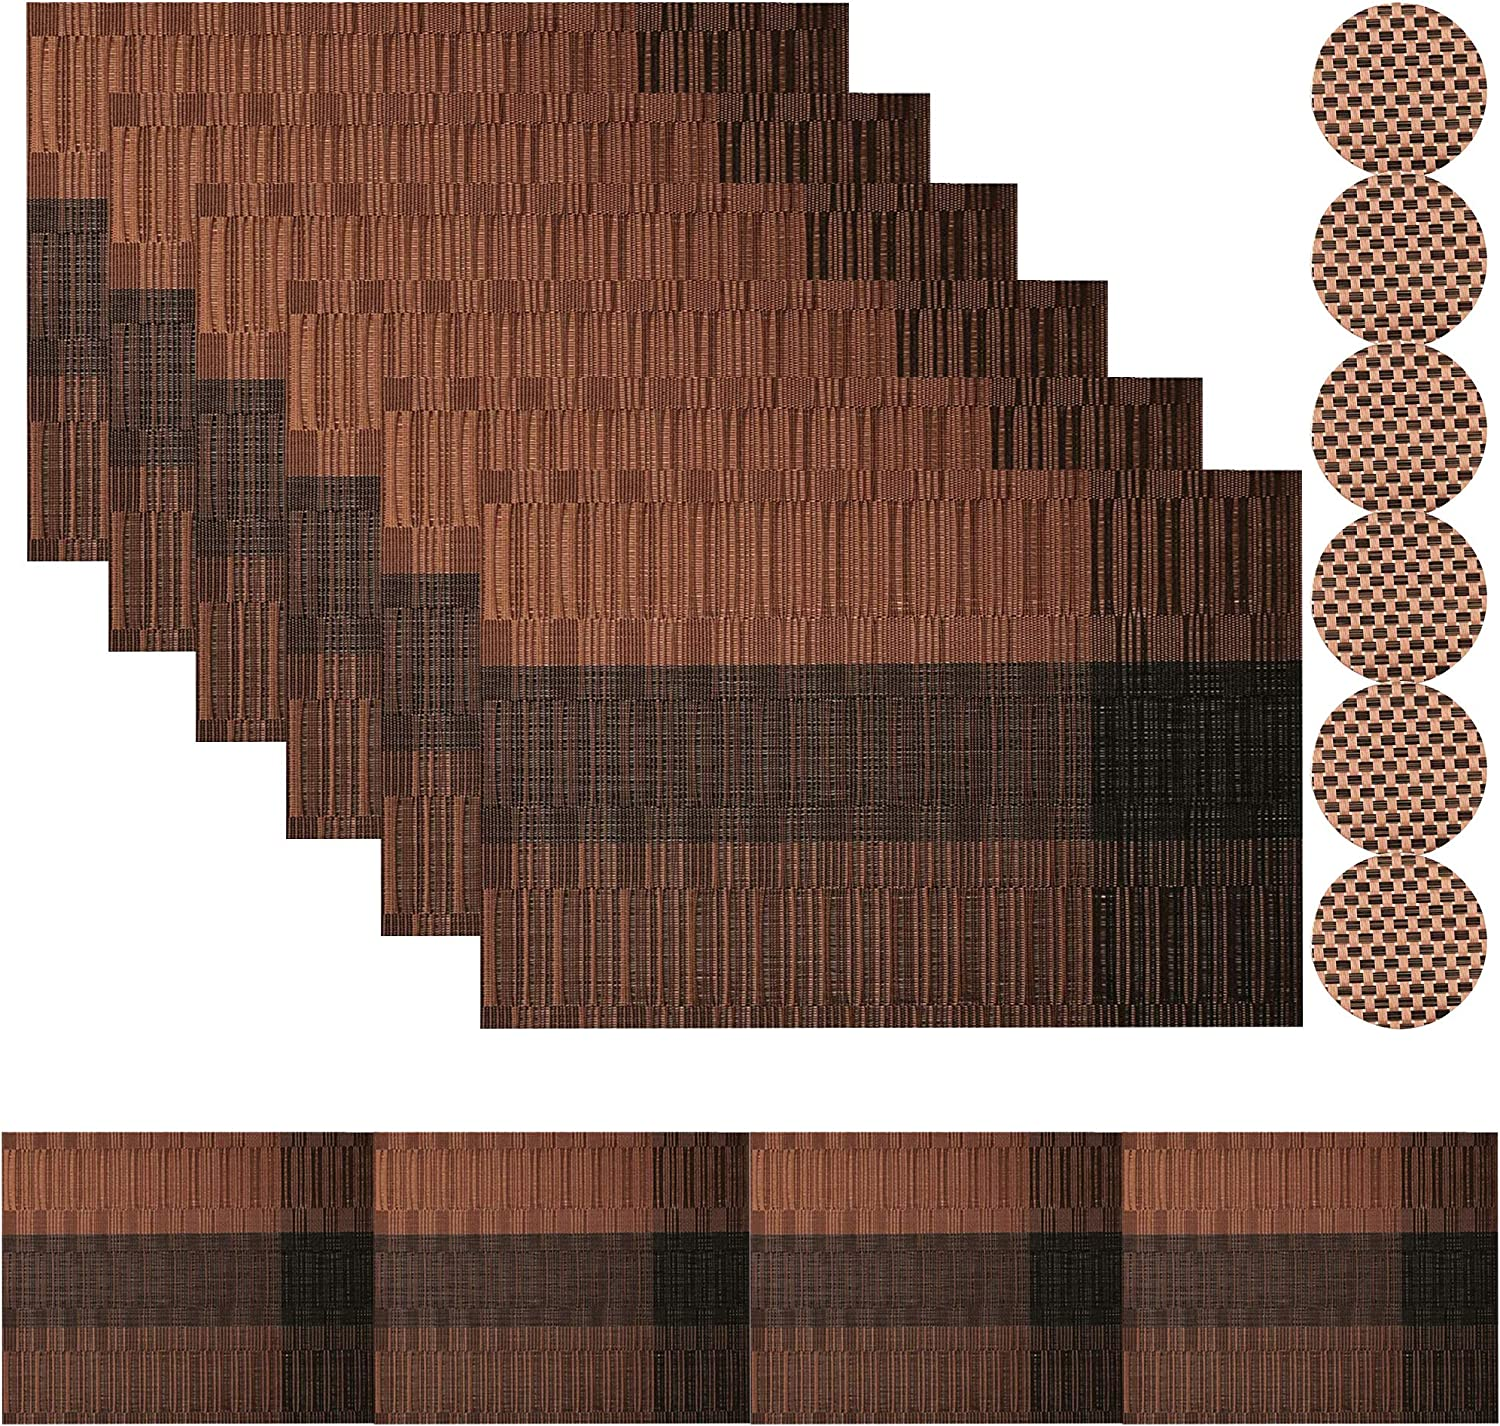 Famibay PVC Placemats with Coasters Set of 6 and Table Runner 180cm Heat Resistant Weave Table Mats for Kitchen Table Brown